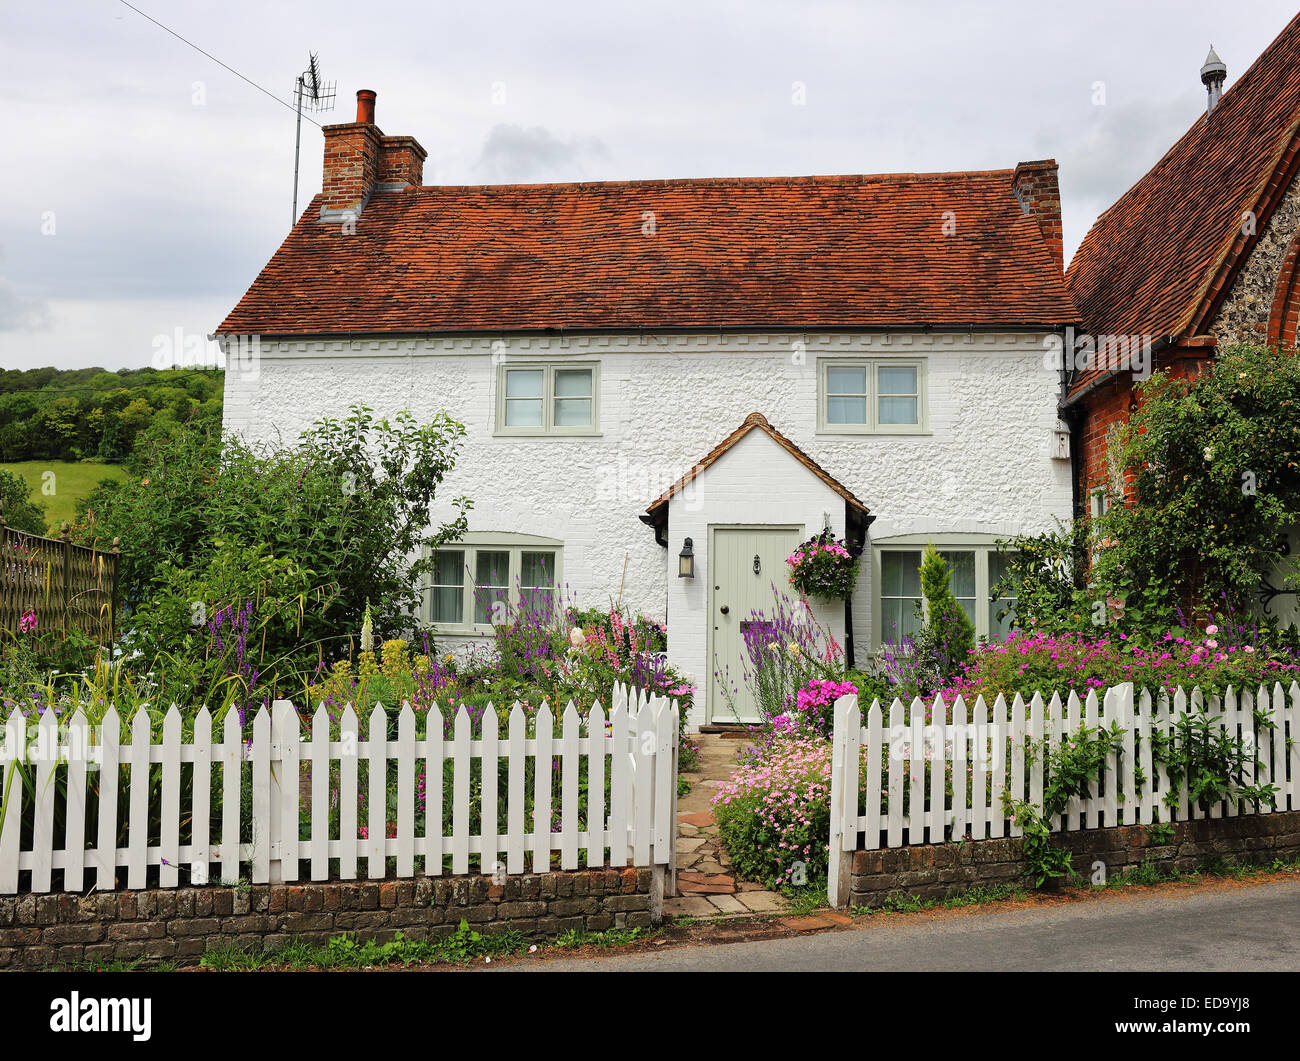 English Stone Cottage traditional whitewashed english rural stone cottage and garden